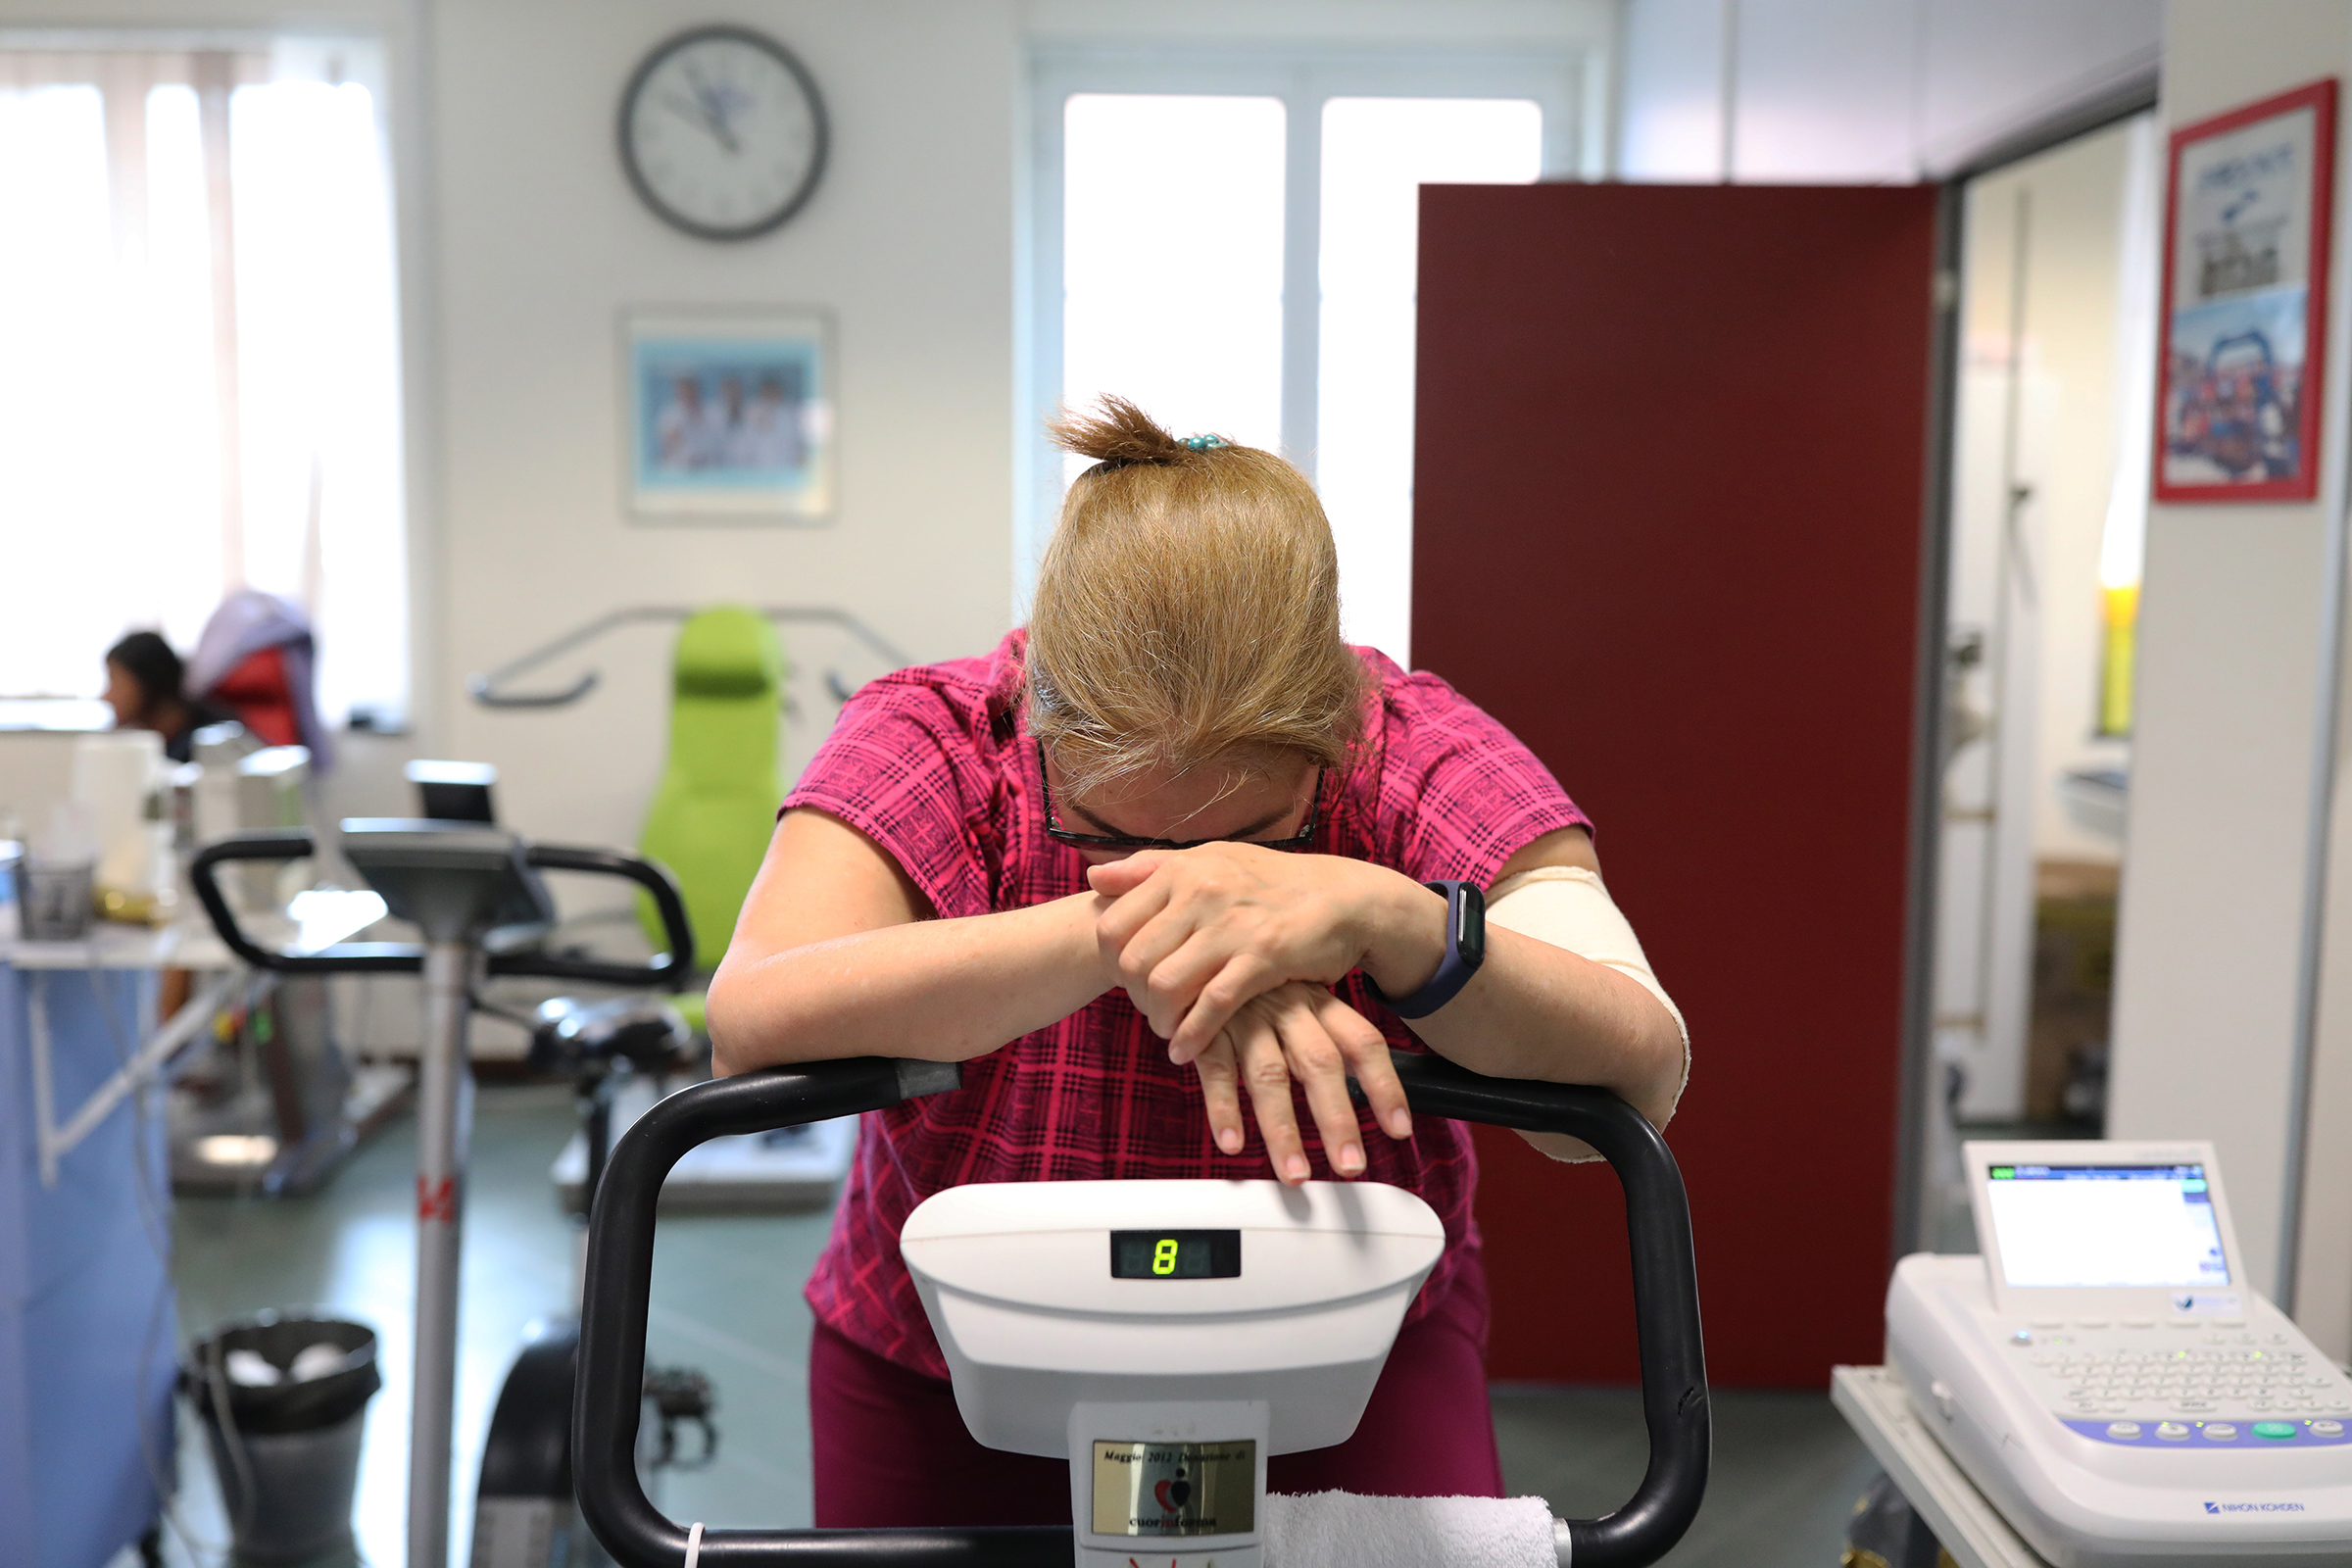 A former COVID-19 patient rides on an exercise bike to strengthen muscle tone at the Department of Rehabilitative Cardiology of ASL 3 Genova on July 24 in Genoa, Italy. She was in the hospital for 15 days, suffering from great fatigue.